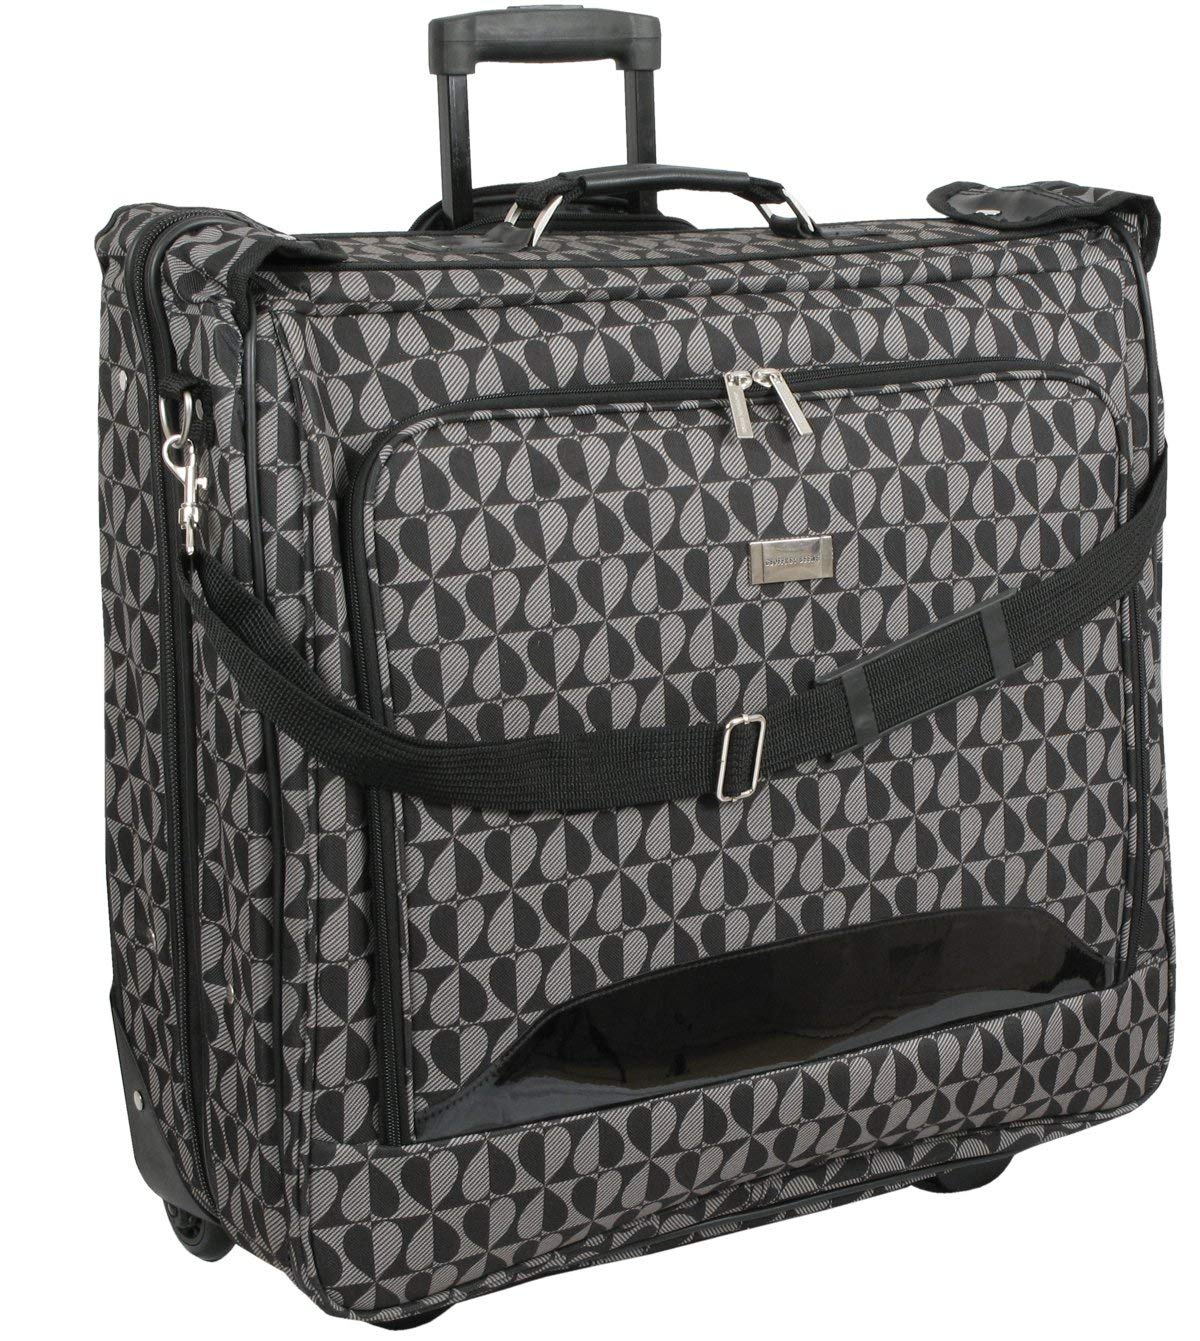 Get Quotations Geoffrey Beene Deluxe Rolling Garment Bag Hearts Fashion Travel Carrier With Wheels